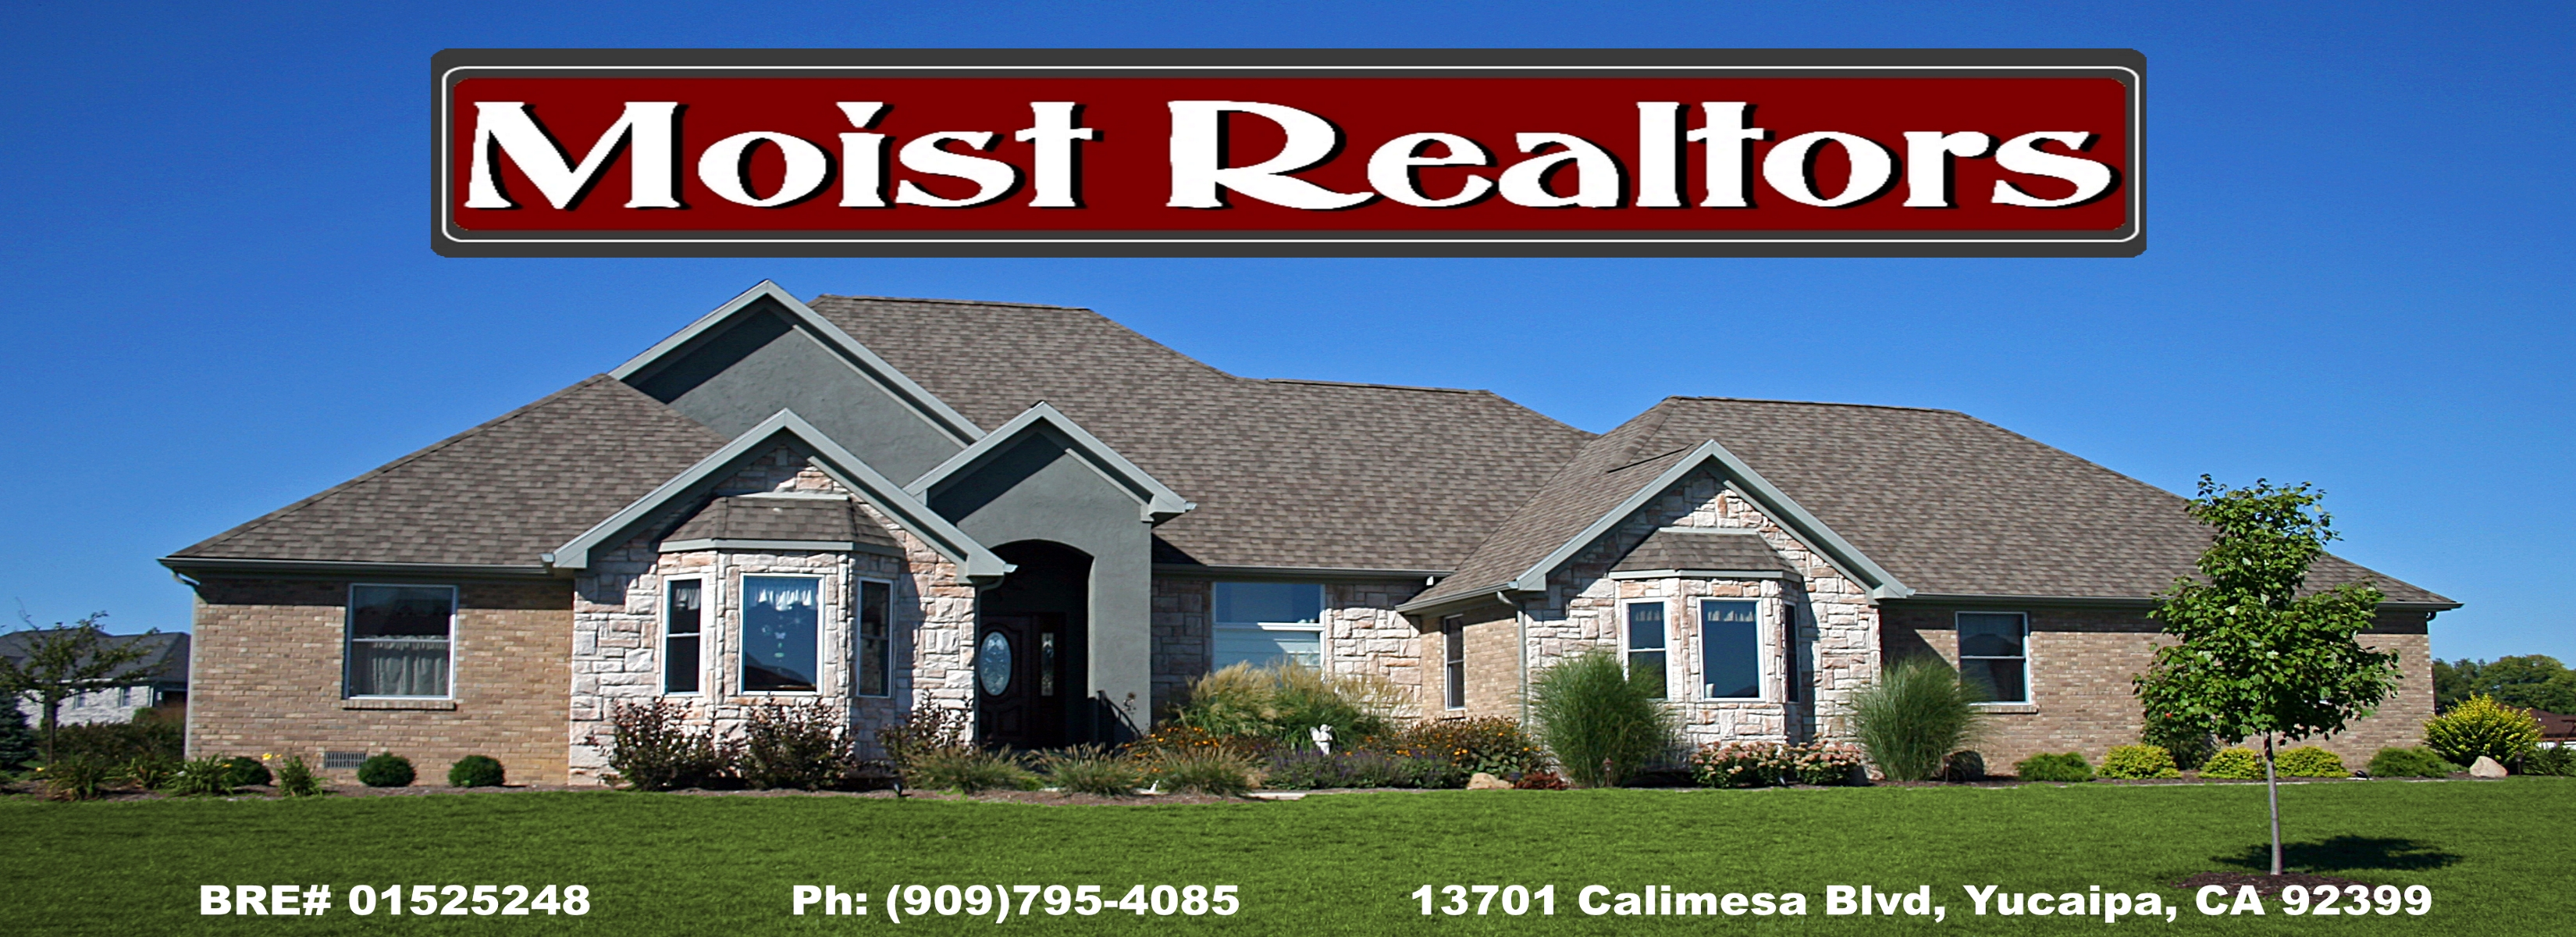 Moist Realtors Coupons near me in Yucaipa 8coupons